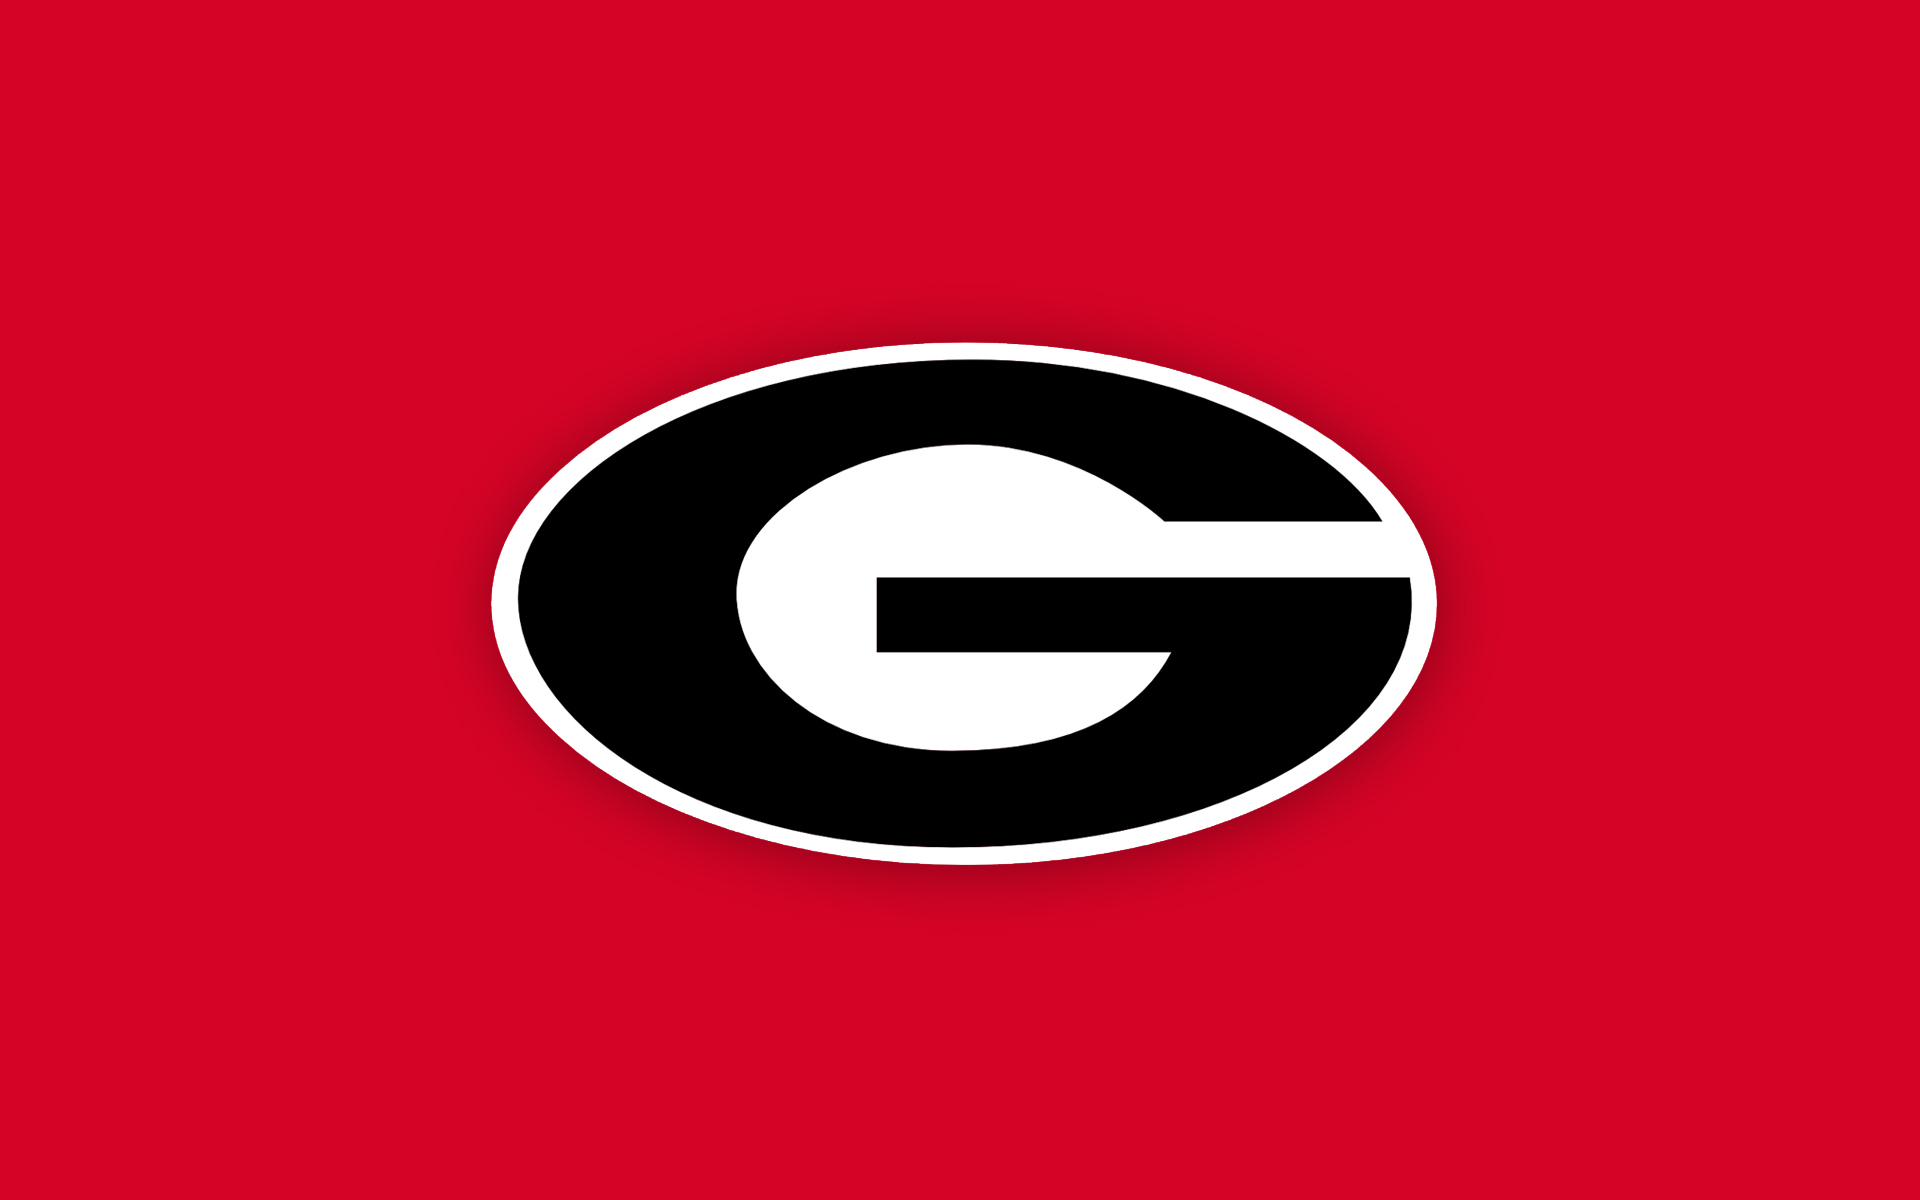 Georgia Football Wallpaper Wallpaper 1920x1200